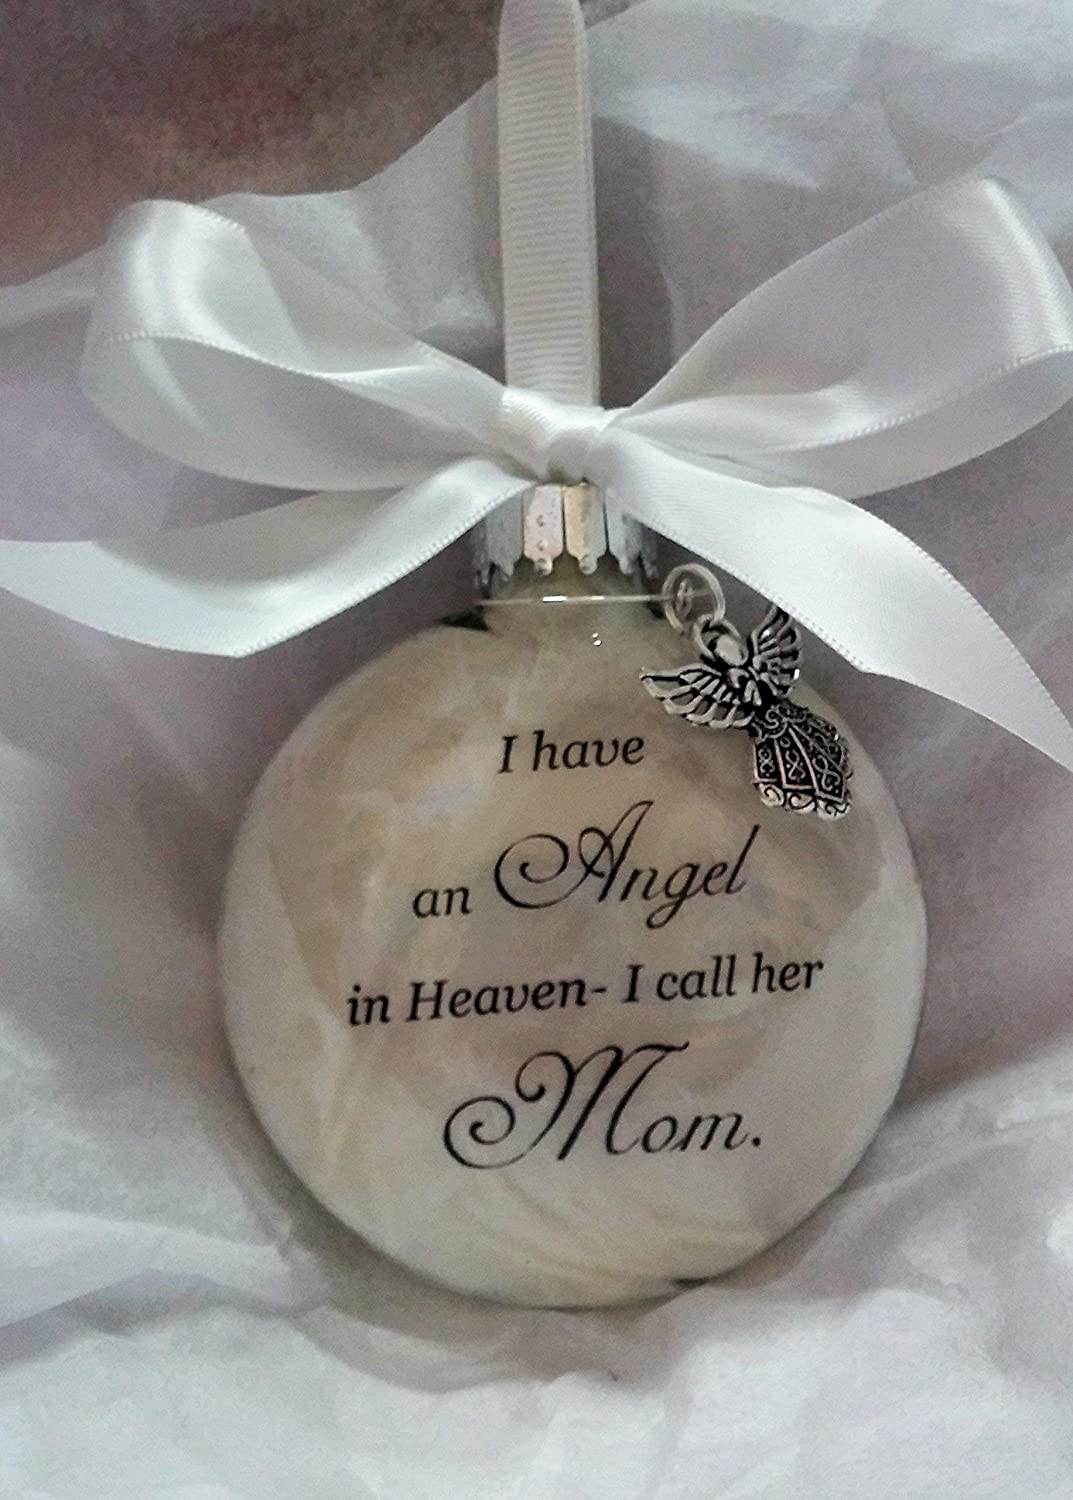 Christmas In Heaven Poem Svg.Memorial Christmas Ornament Sympathy Gift Angel In Heaven I Call Her Mom